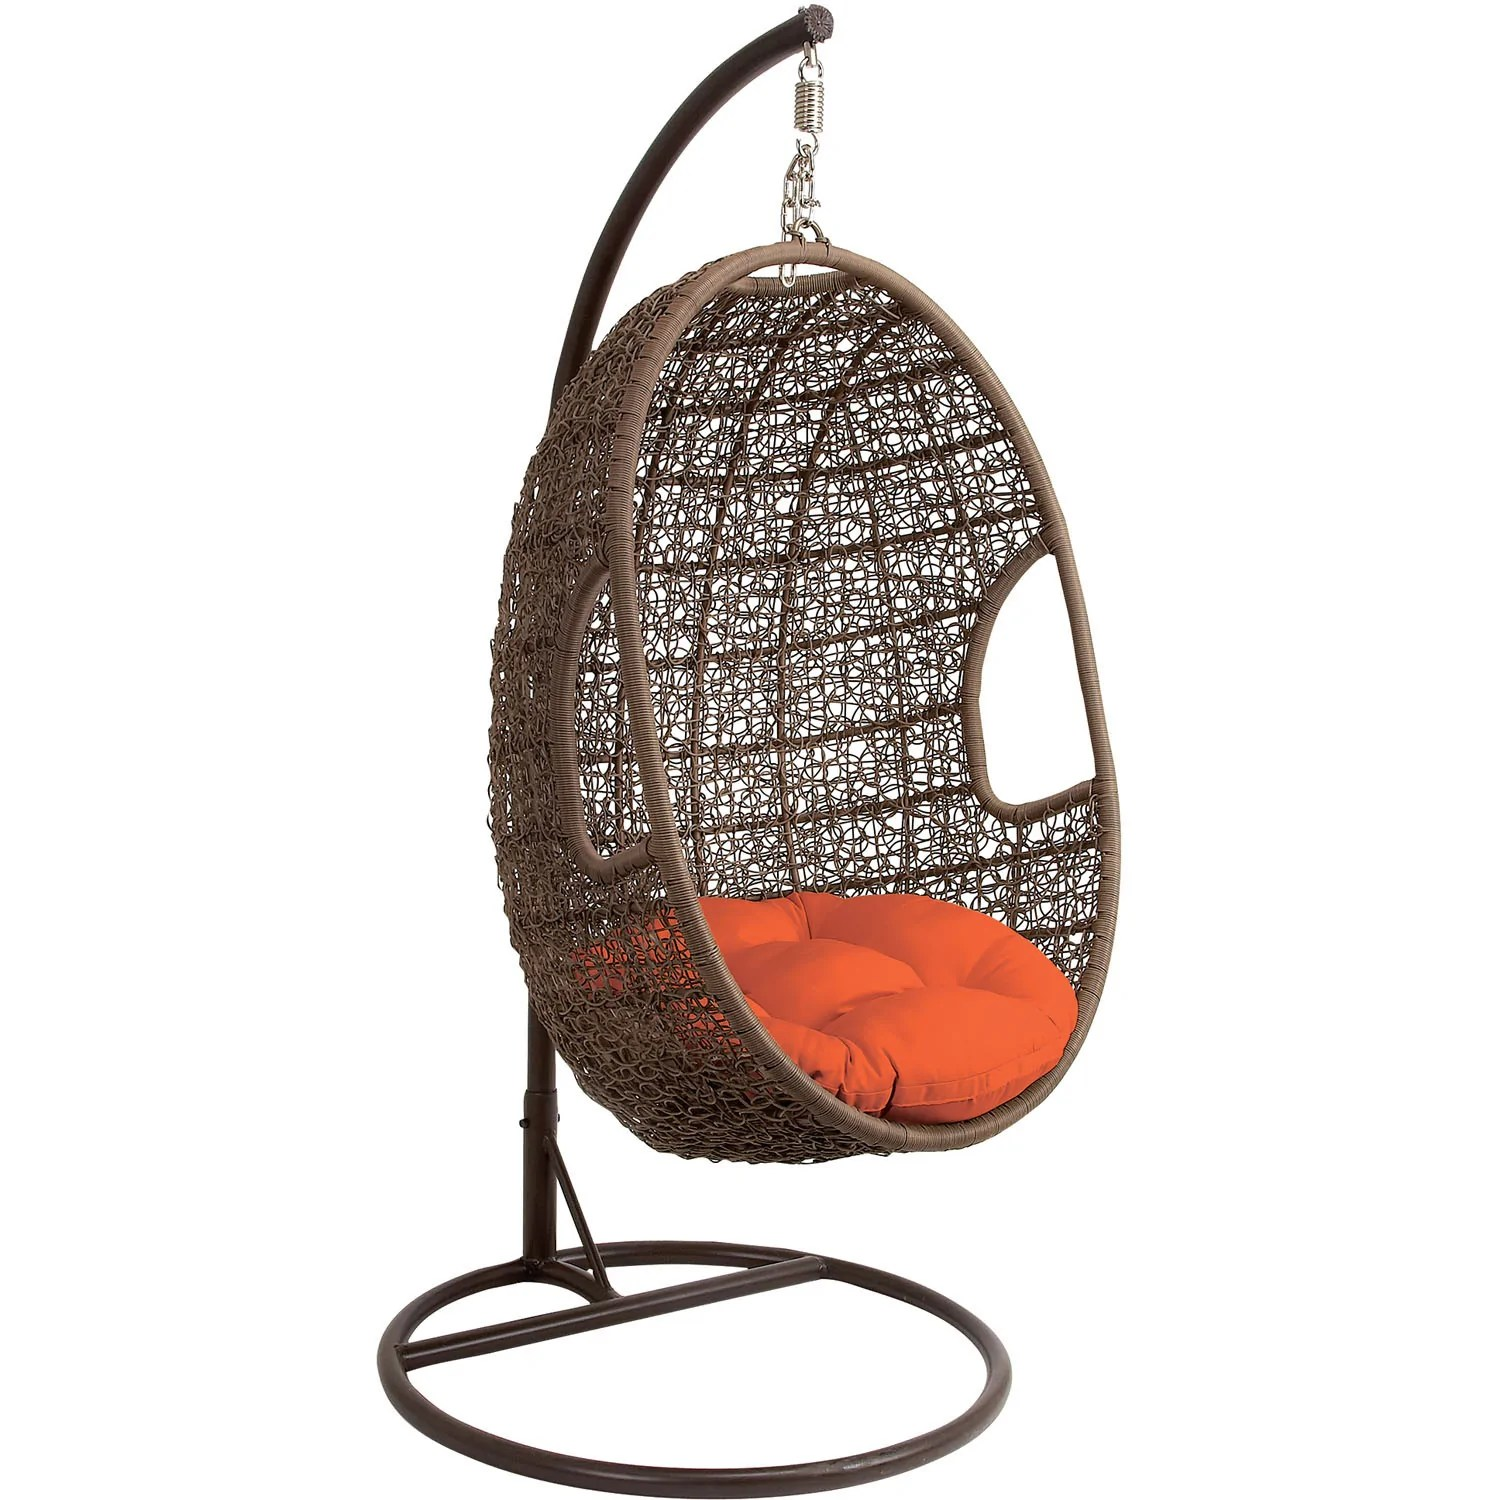 Hanging Egg Chair Outdoor Hanover Outdoor Wicker Rattan Hanging Egg Chair Swing Egg Swing02